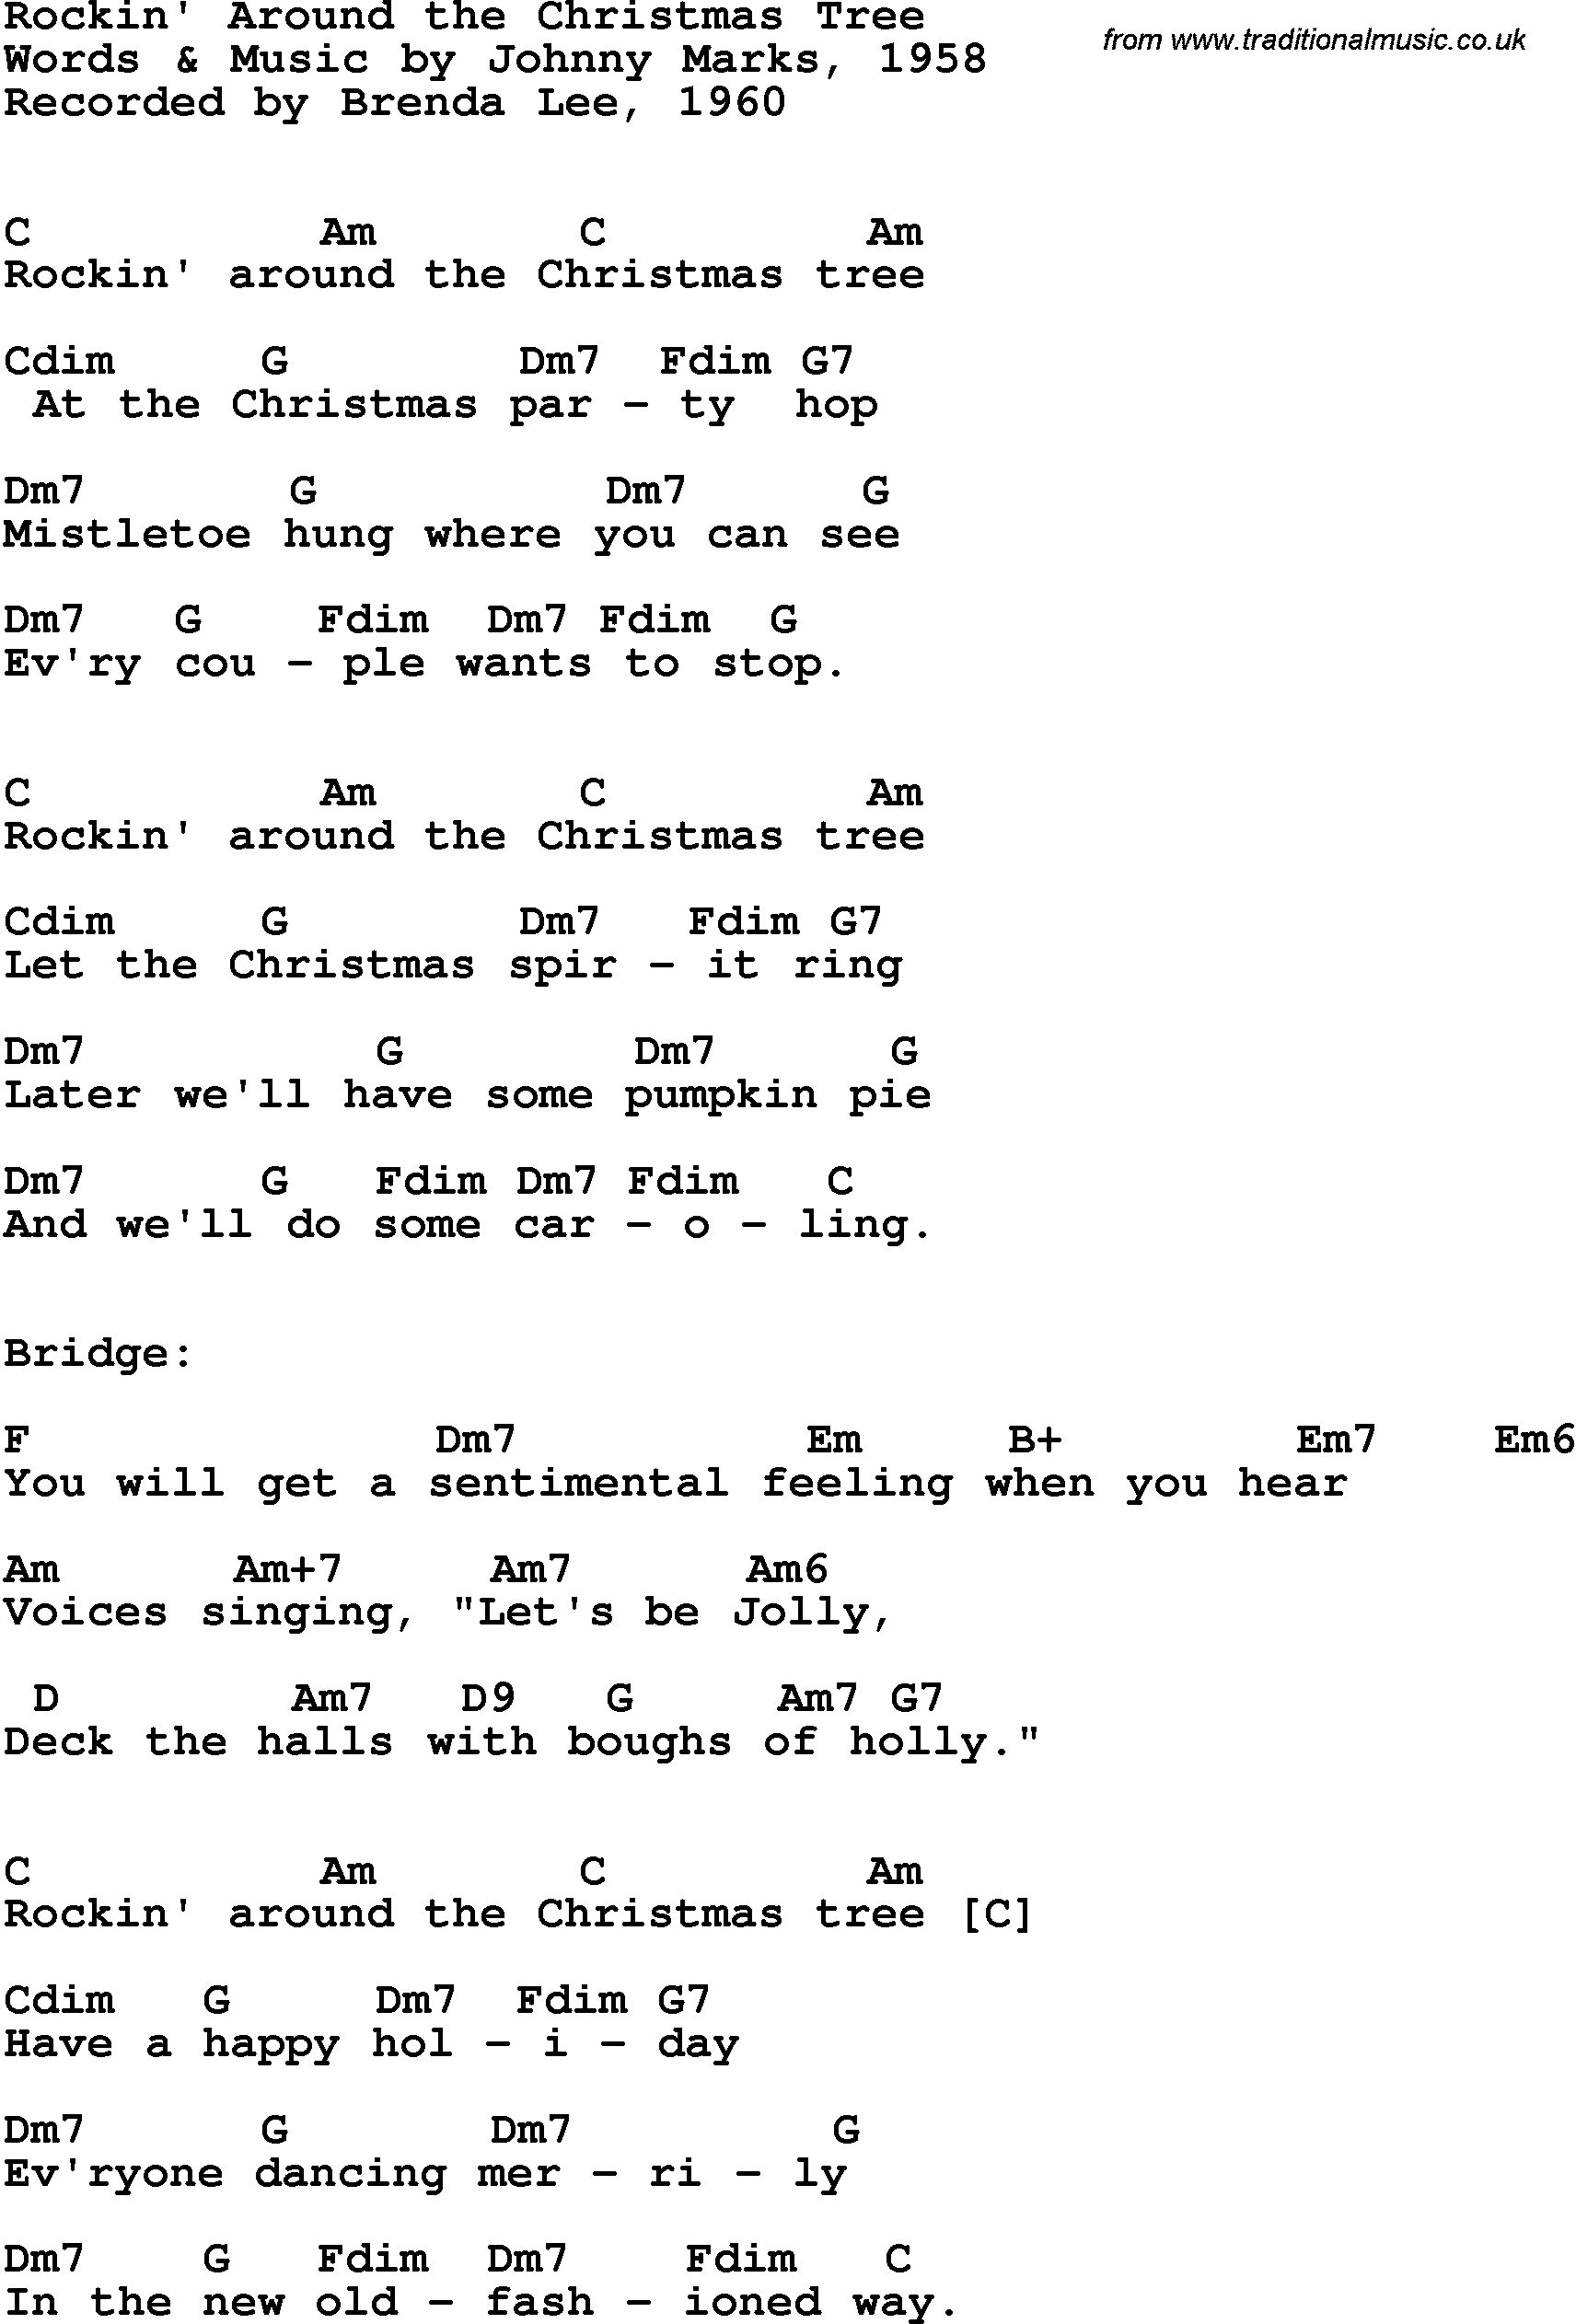 We three kings guitar chords